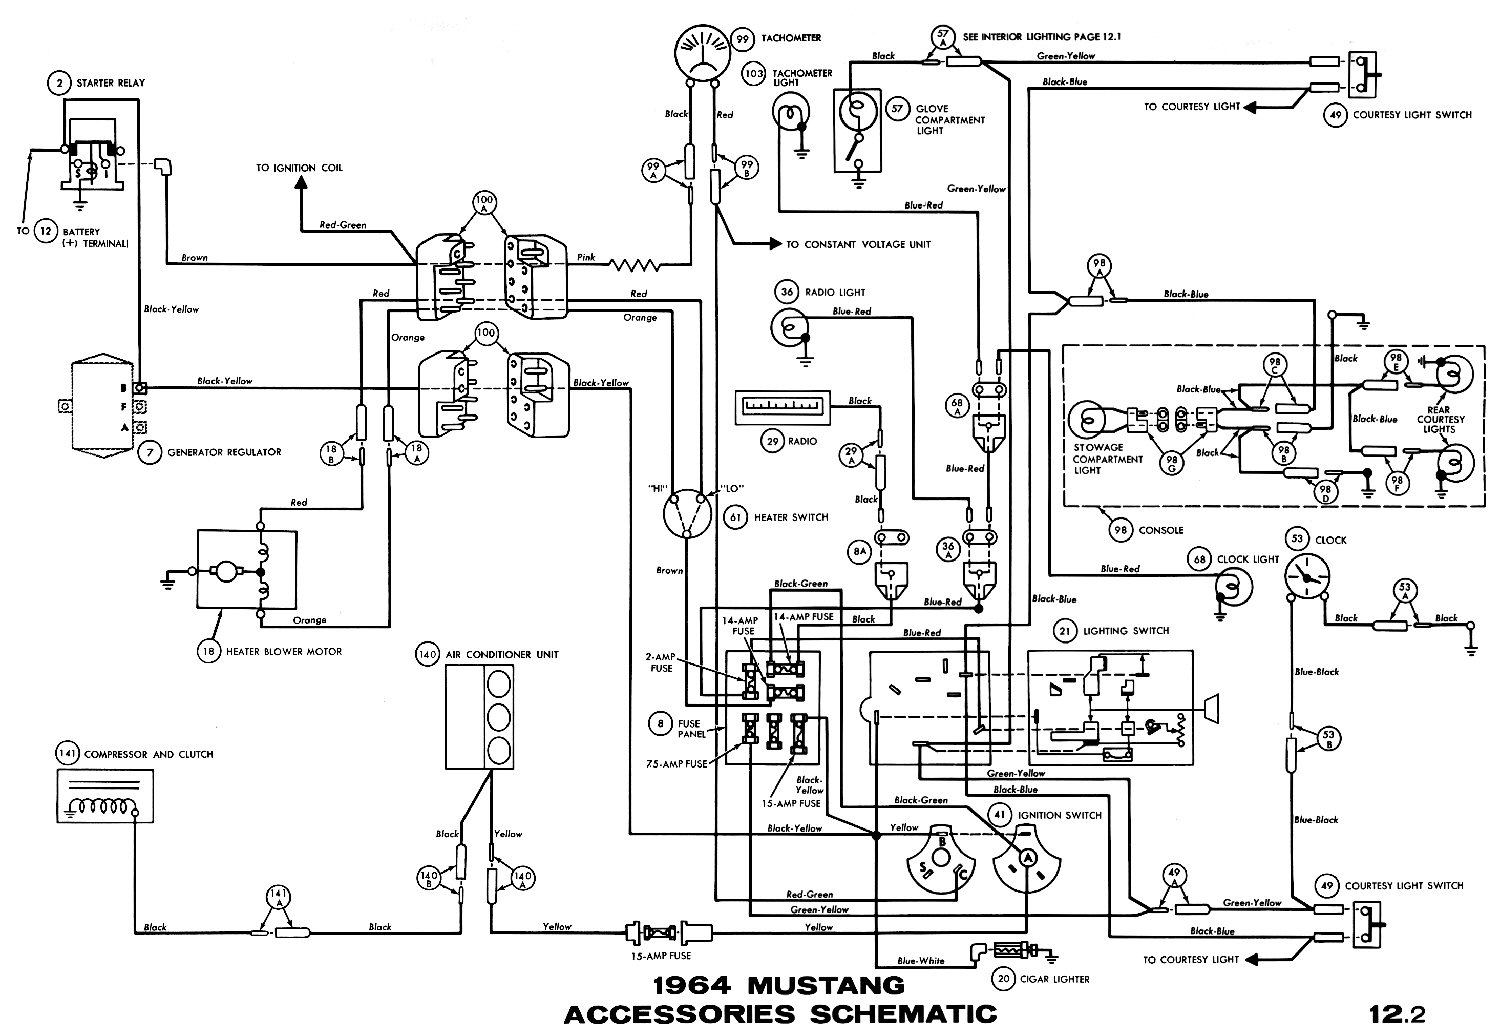 1964m 66 mustang wiring diagram radio tape 66 mustang fuse diagram 1970 mustang radio wiring diagram at virtualis.co